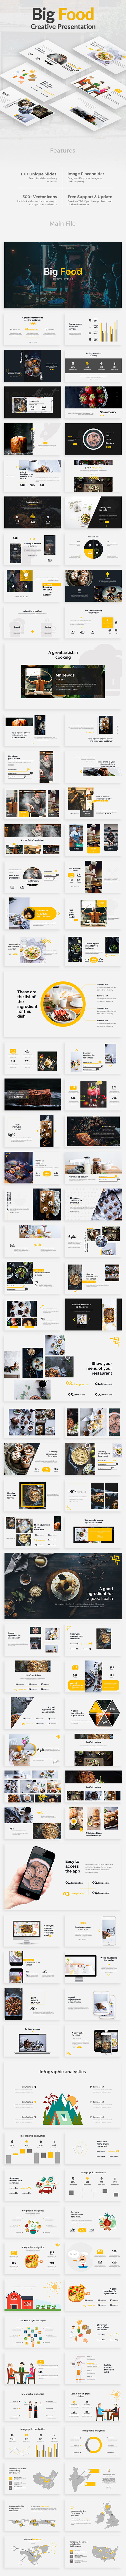 GraphicRiver Big Food Creative Keynote Template 21177301